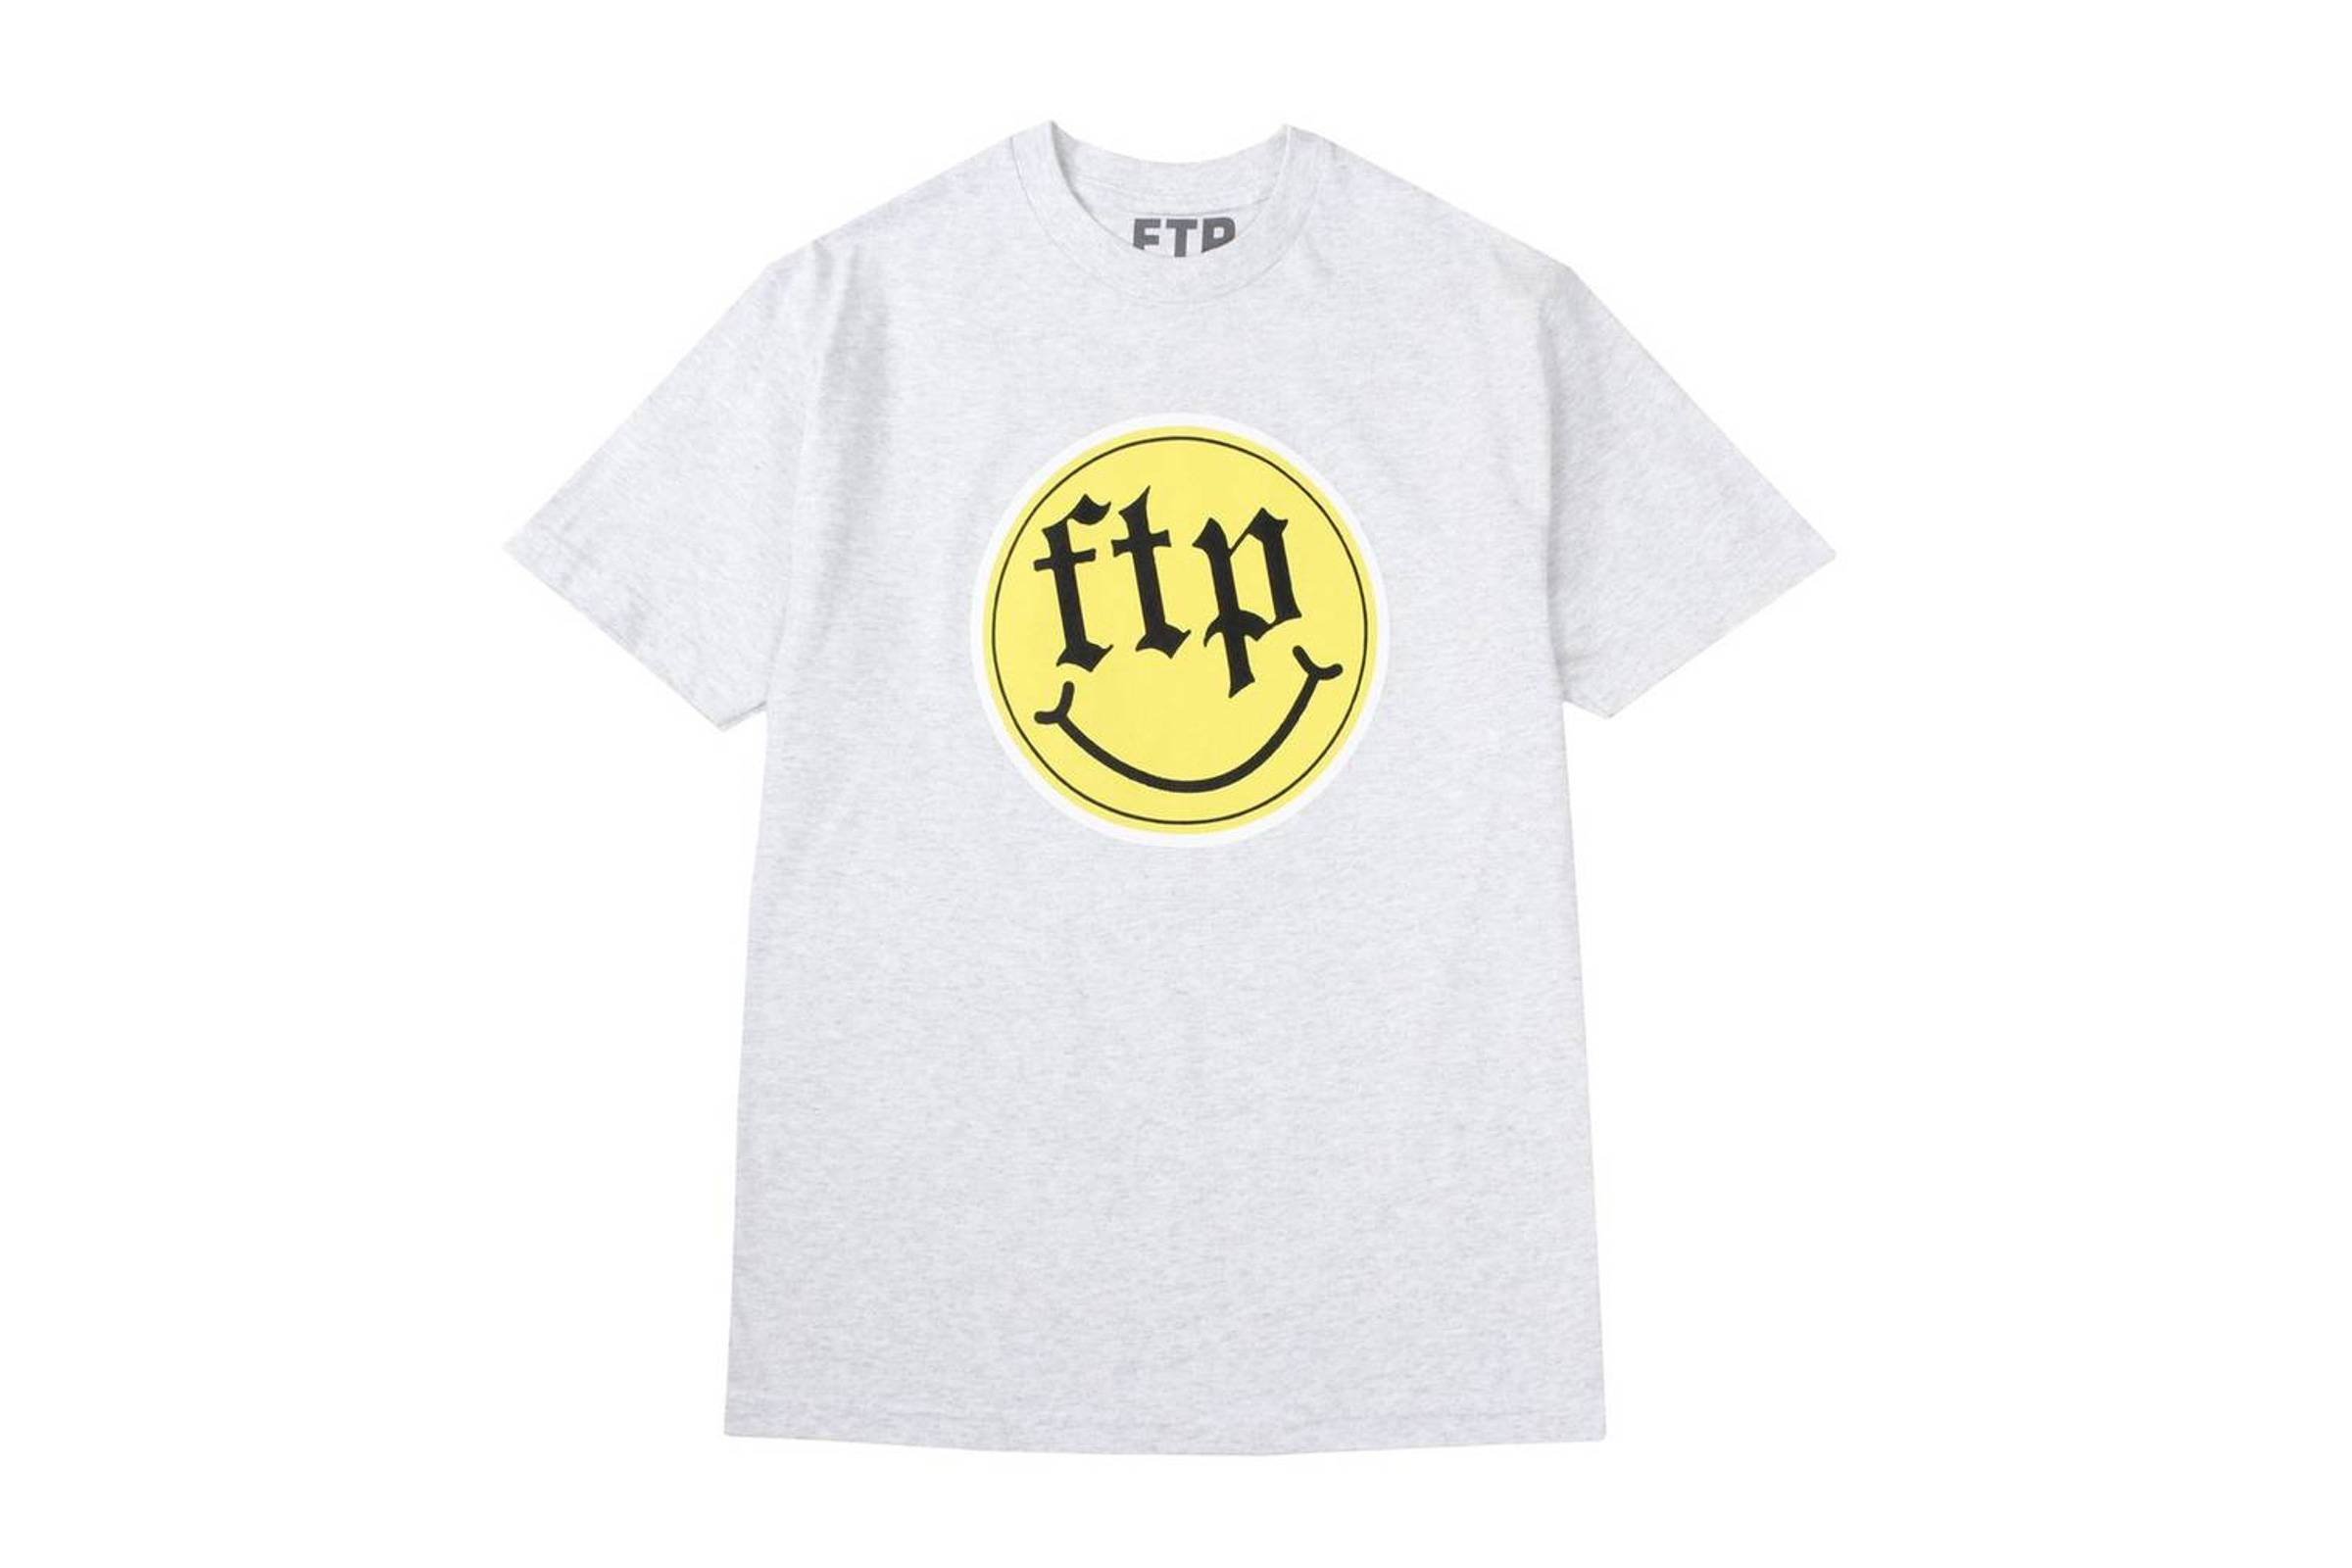 FTP Smiley Tee